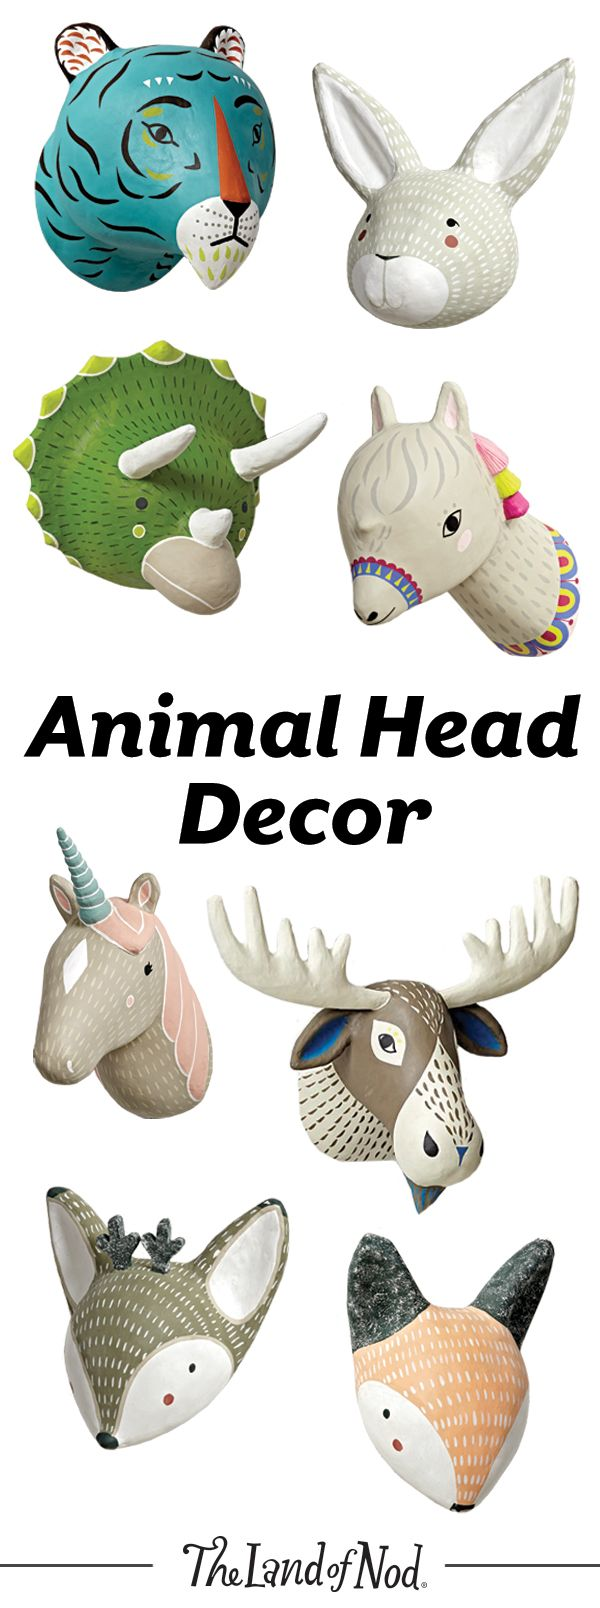 Decorating a safari-themed nursery or kids room? Our playful collection of animal head wall décor is ready to add a wild touch. With everything from paper mache to decals to plush, this collection is ready to roar.